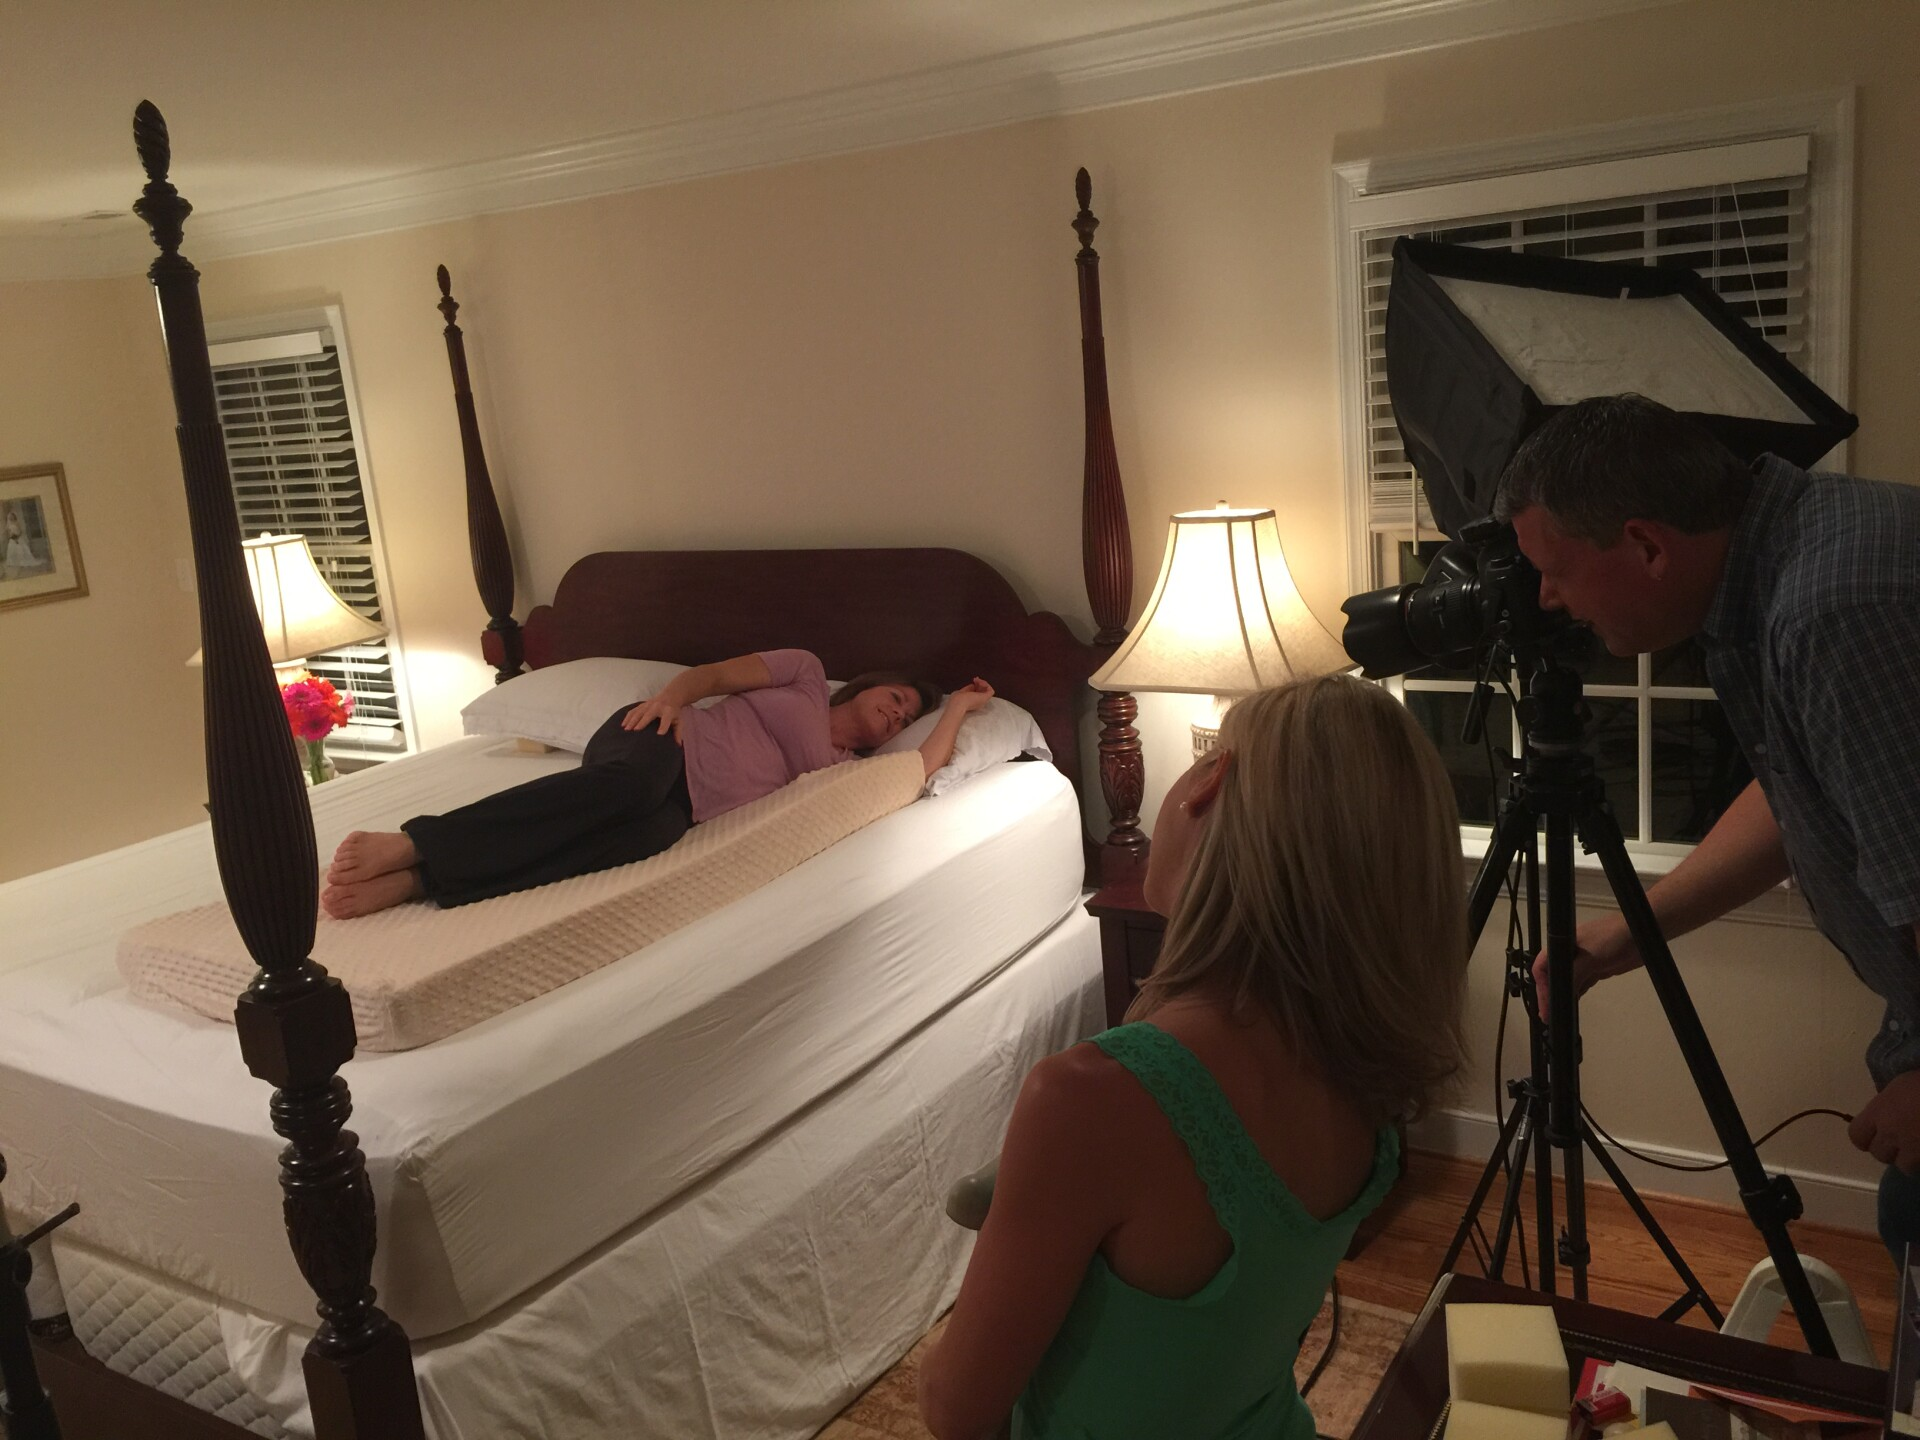 Photos: Friends create product to 'comfort' women recovering from breastsurgeries